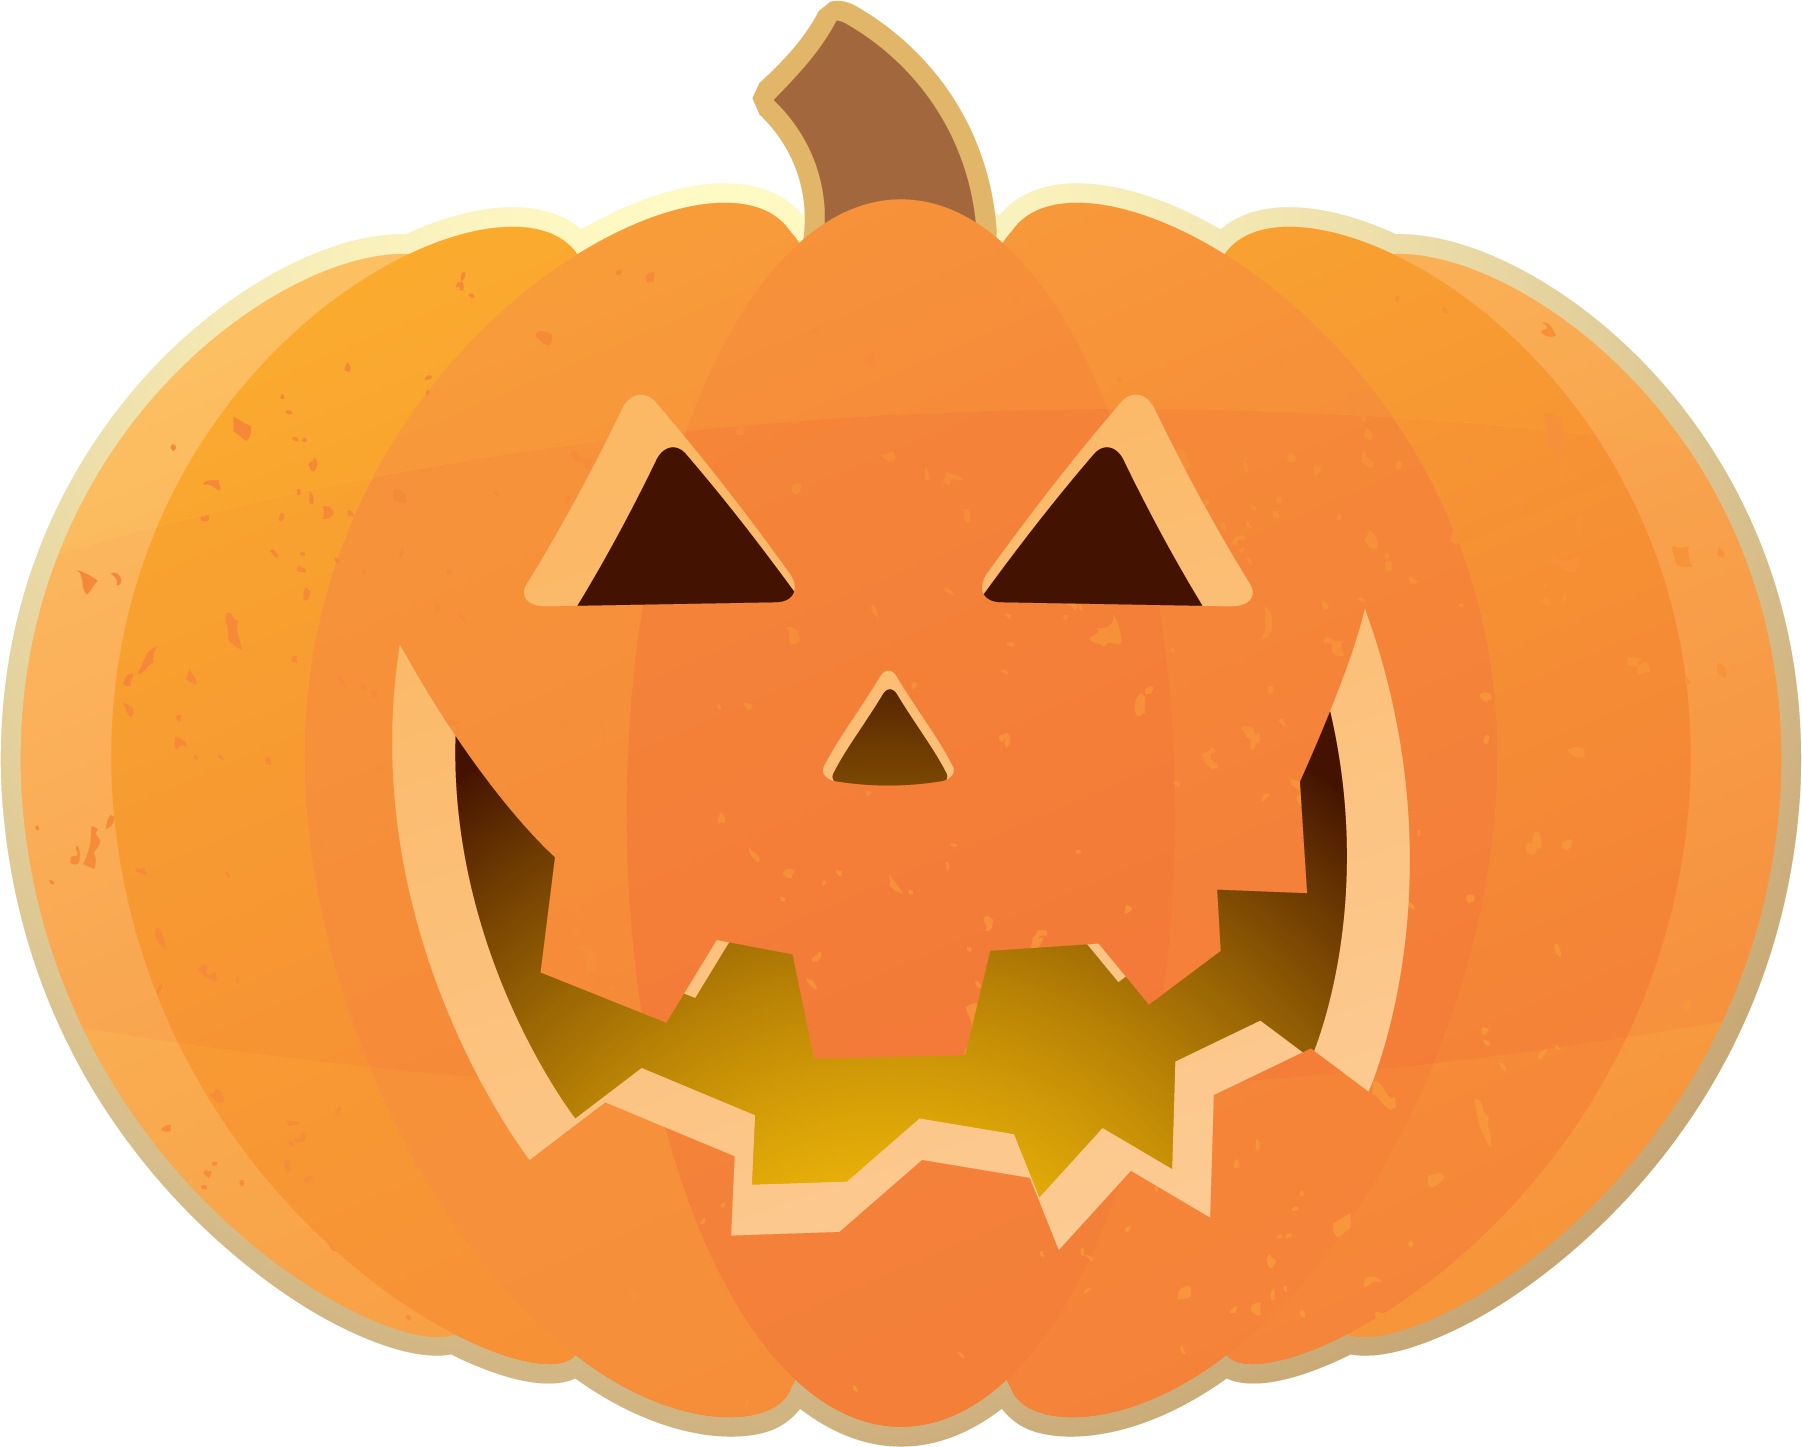 Happy halloween pumpkin clipart vector black and white library Free Pumpkin Clipart at GetDrawings.com | Free for personal use Free ... vector black and white library